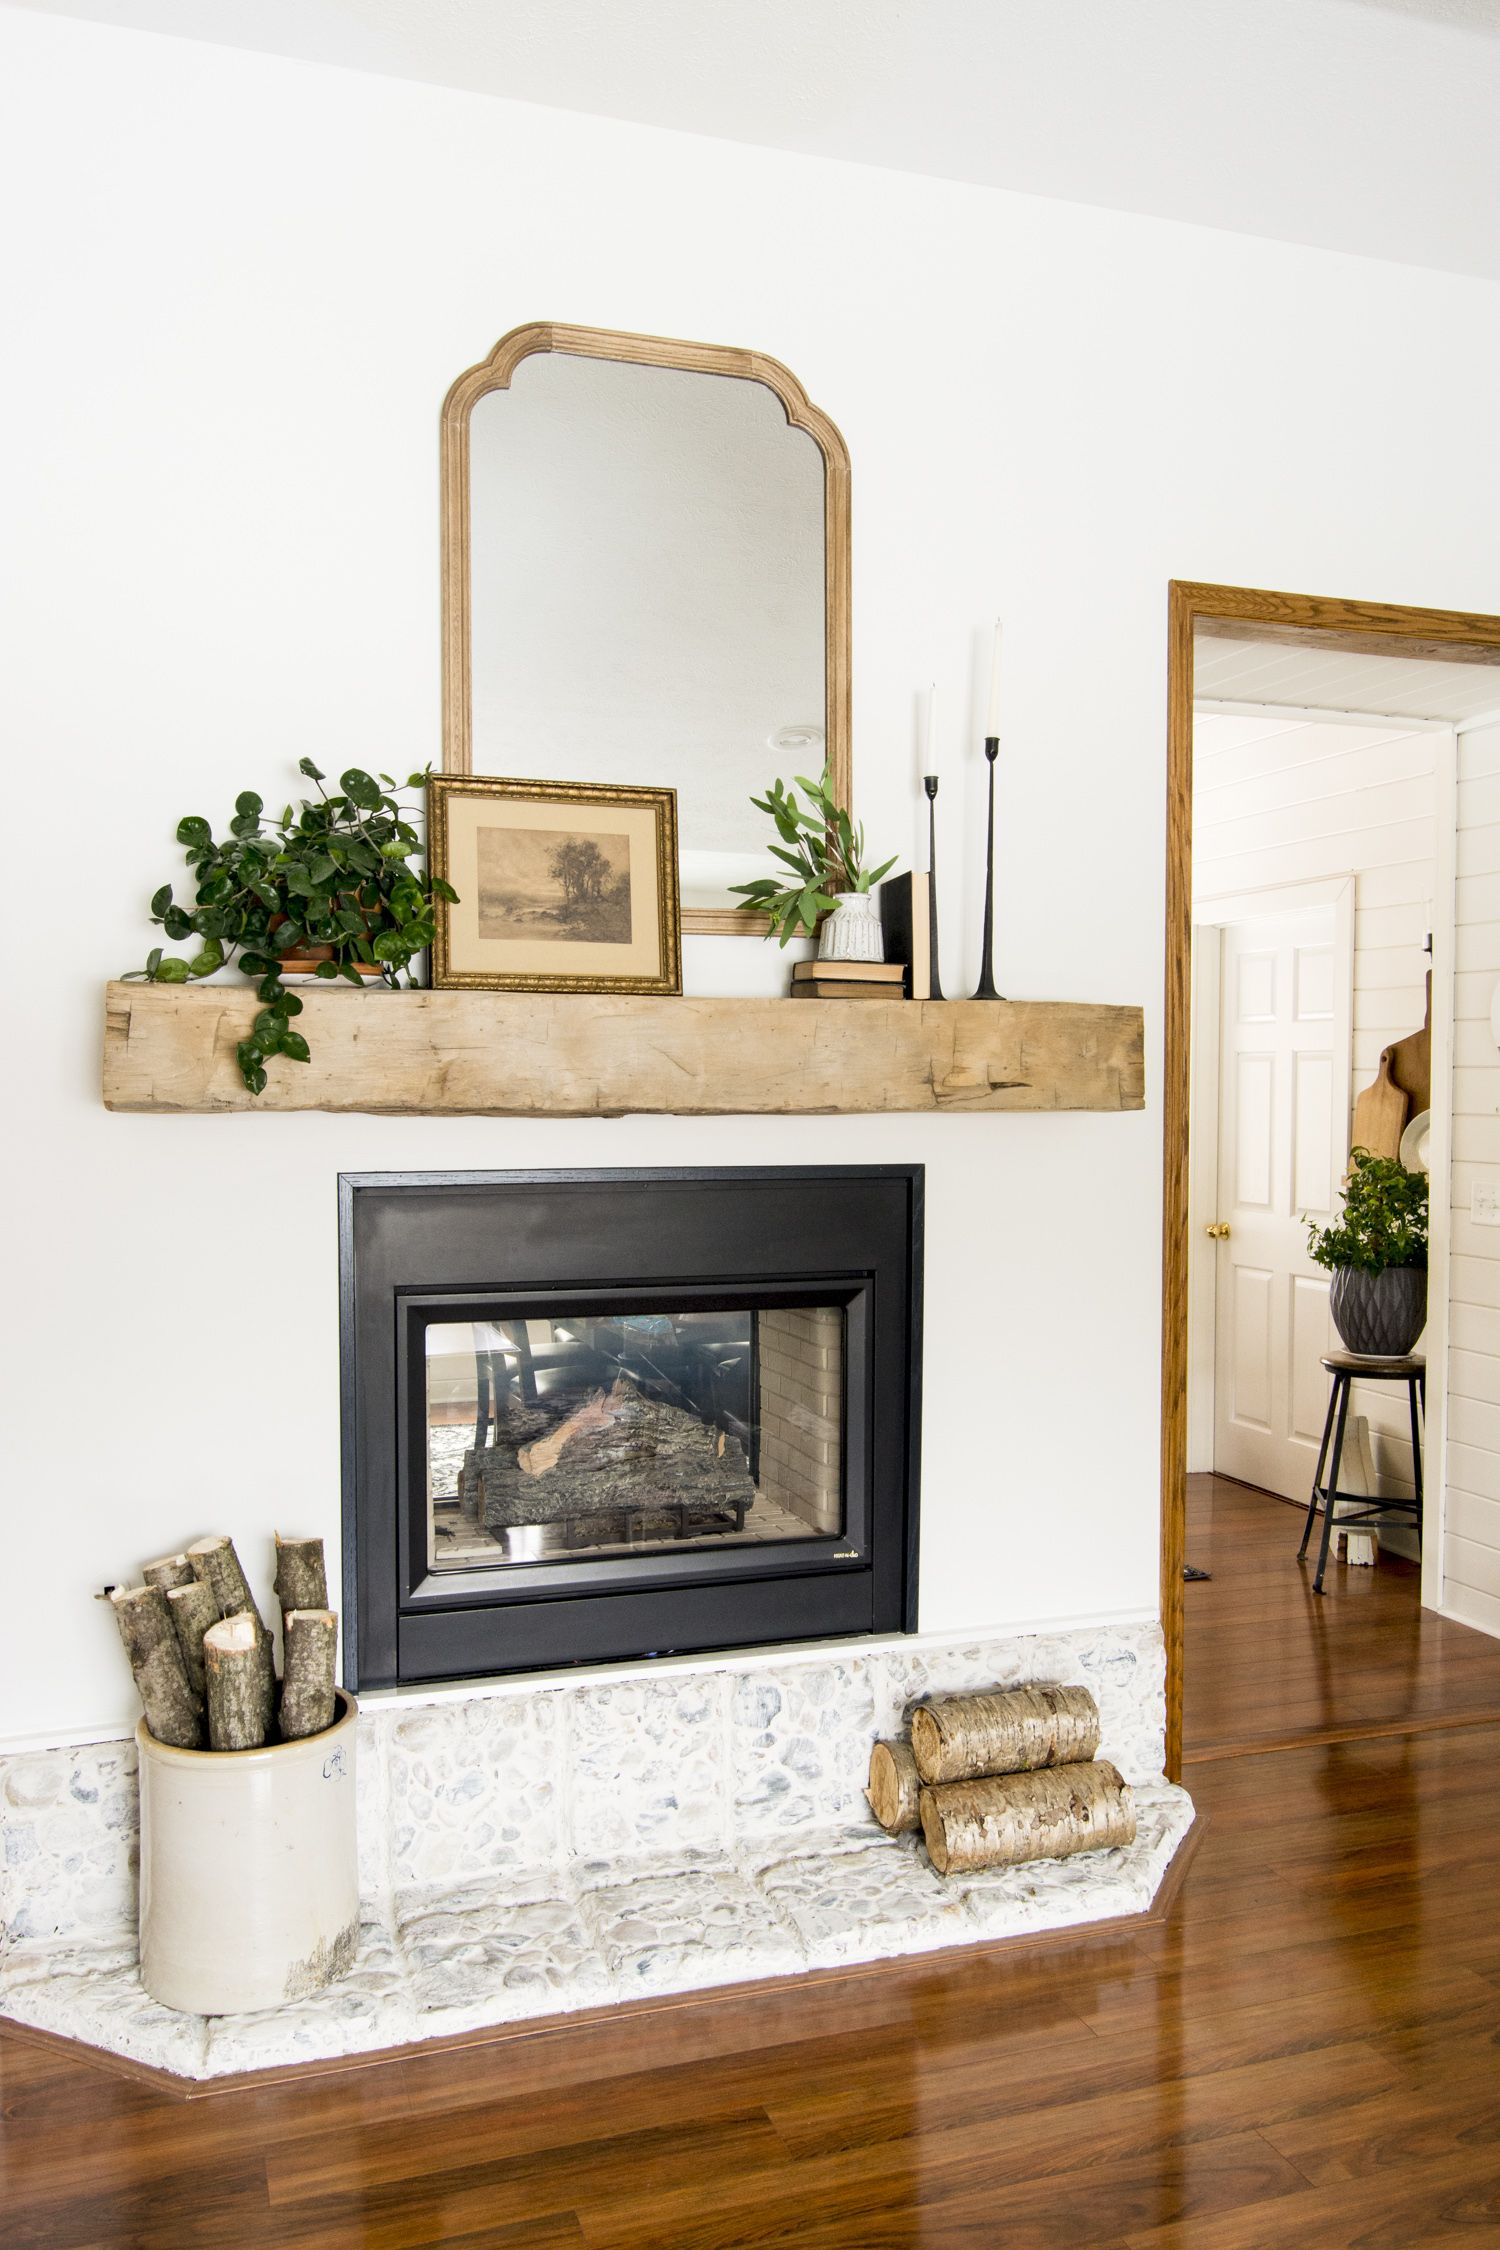 Do you want to add character to your home? Learn how we easily installed a floating barn beam mantel over our gas fireplace! #fromhousetohaven #mantel #floatingmantel #barnbeammantel #reclaimedbarnwood